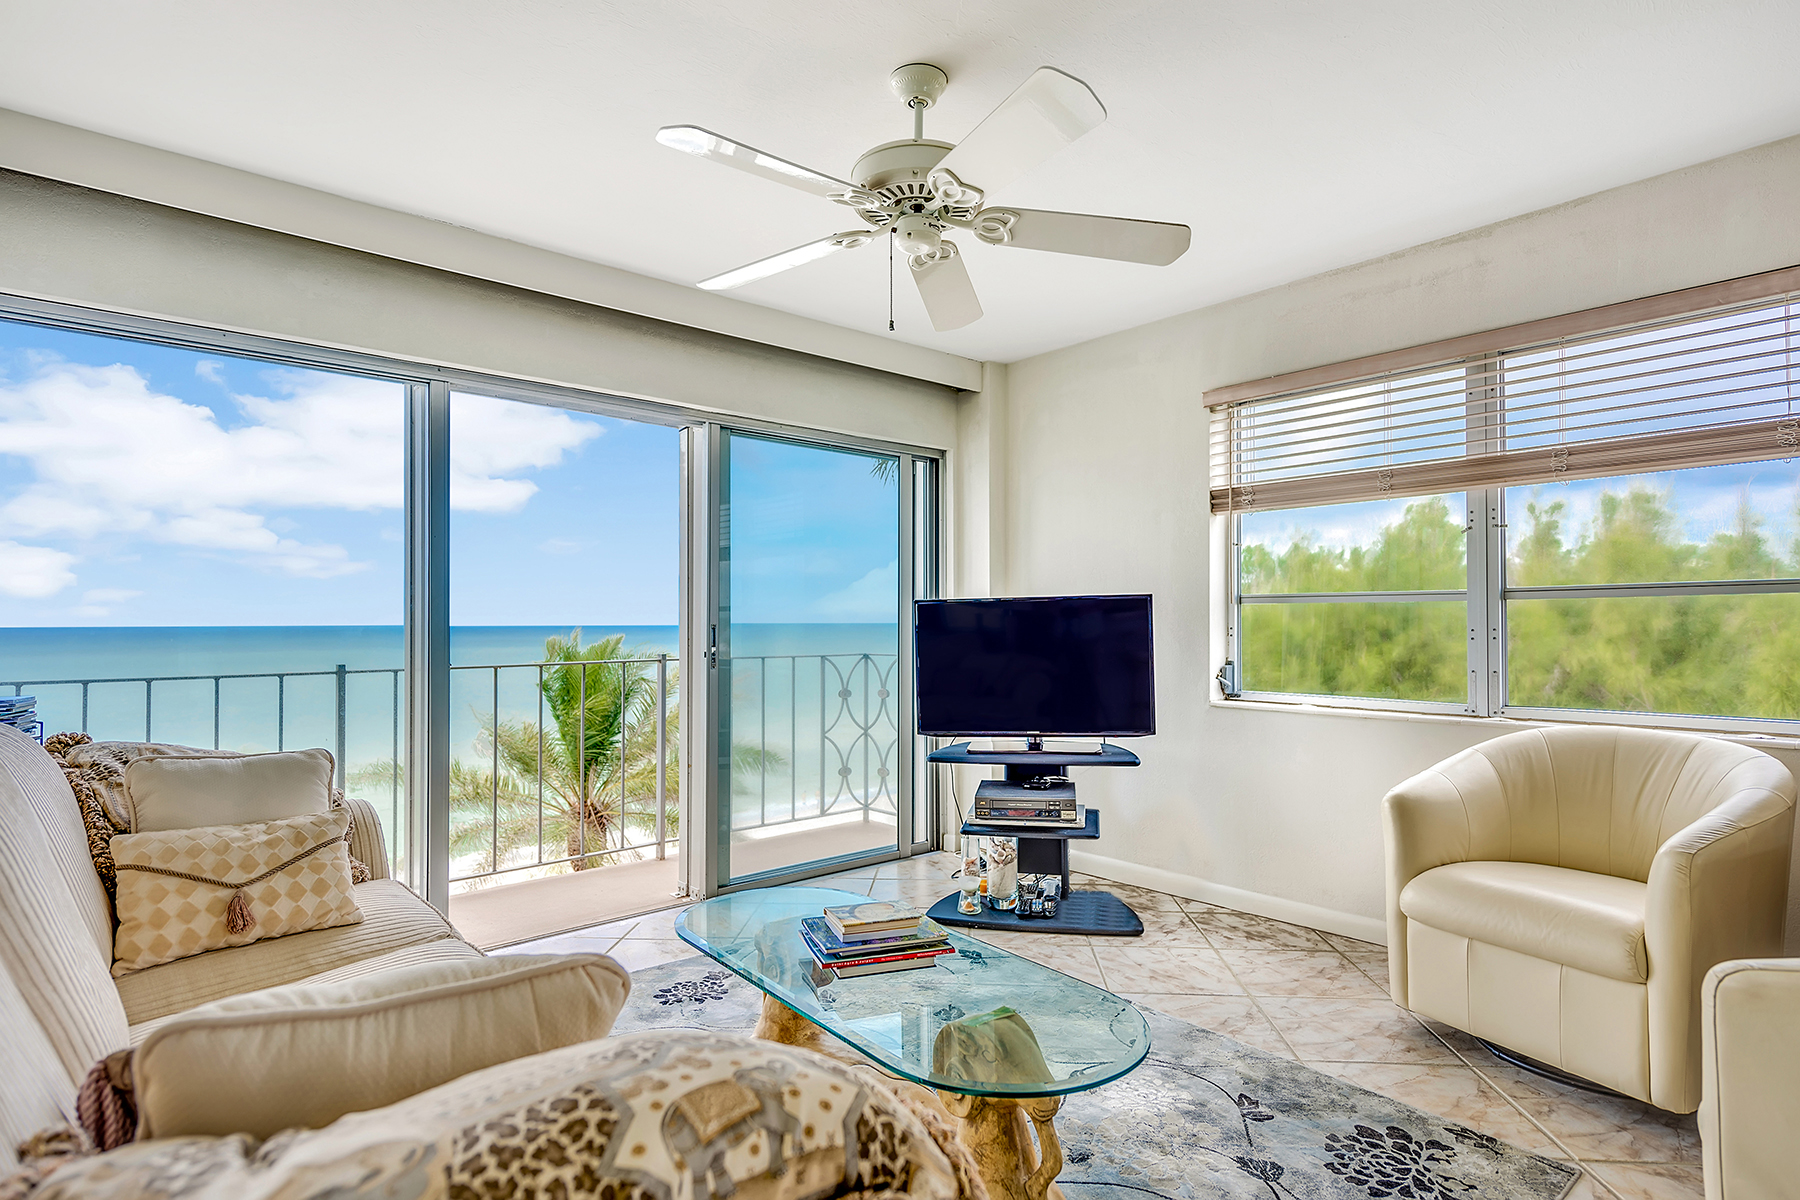 Condominium for Sale at MOORINGS - CARRIAGE CLUB 2011 Gulf Shore Blvd N 56, Naples, Florida 34102 United States